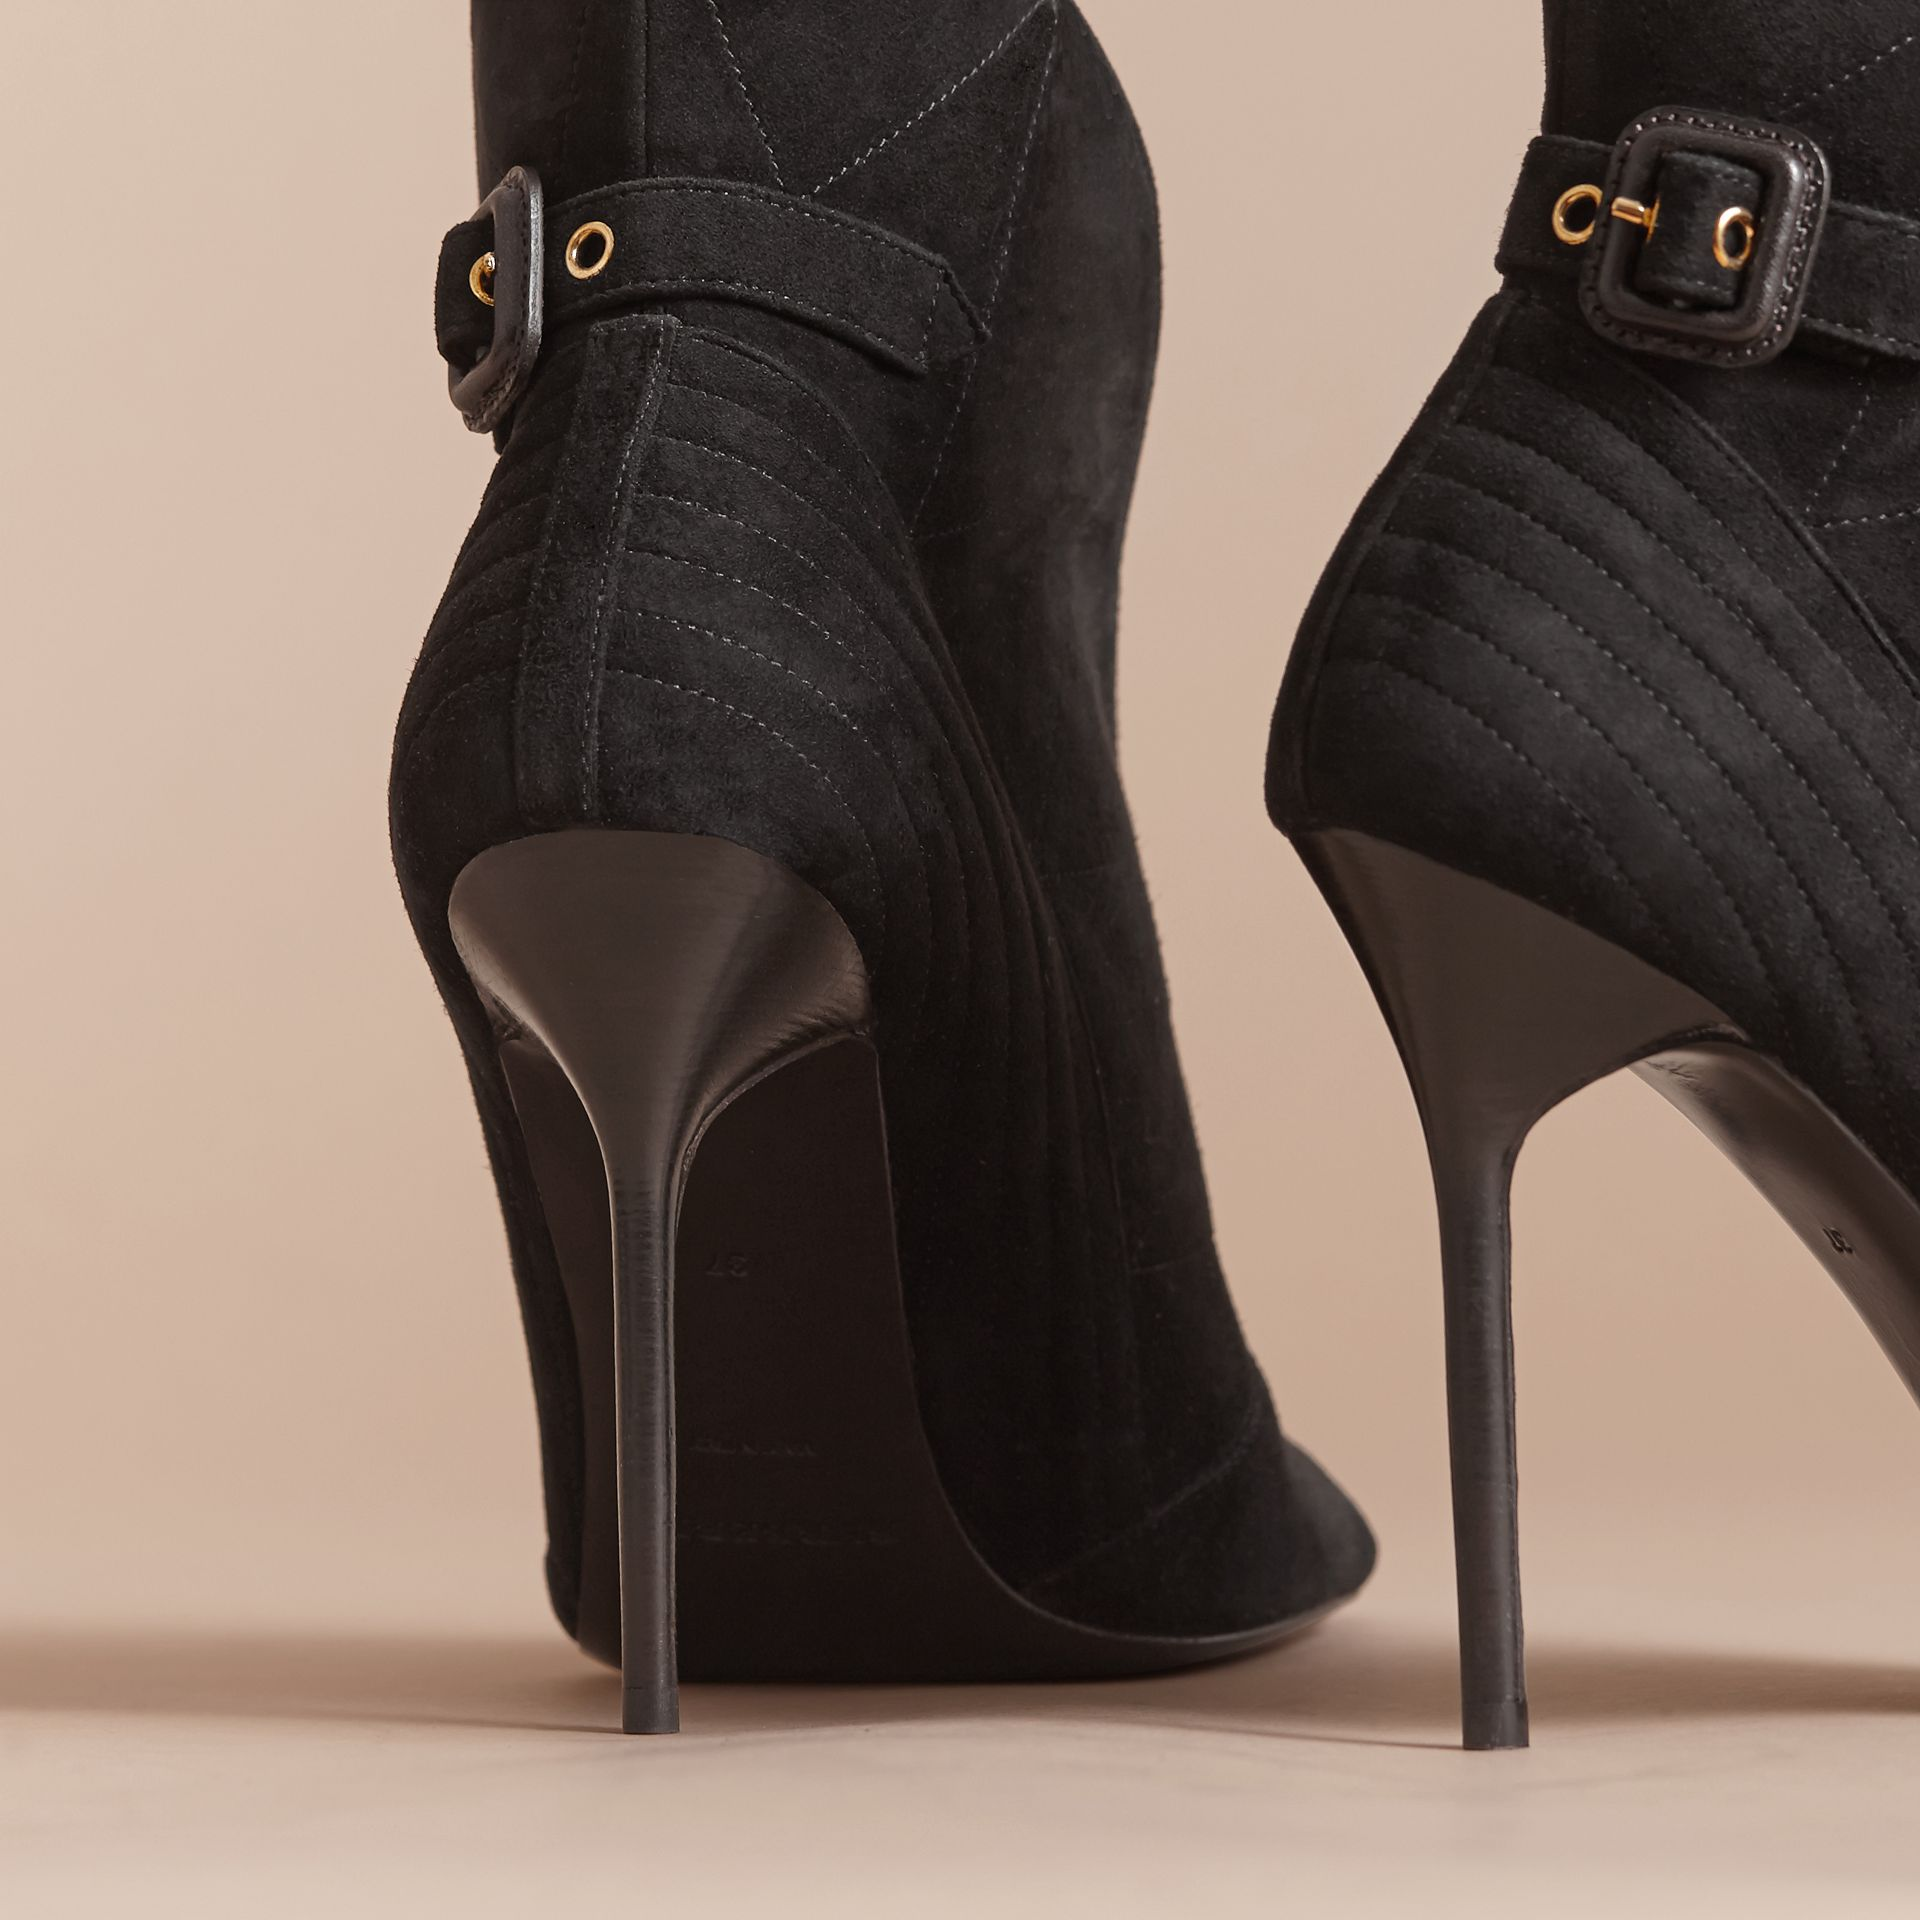 Buckle Detail Suede Peep-toe Ankle Boots in Black - Women | Burberry Australia - gallery image 4